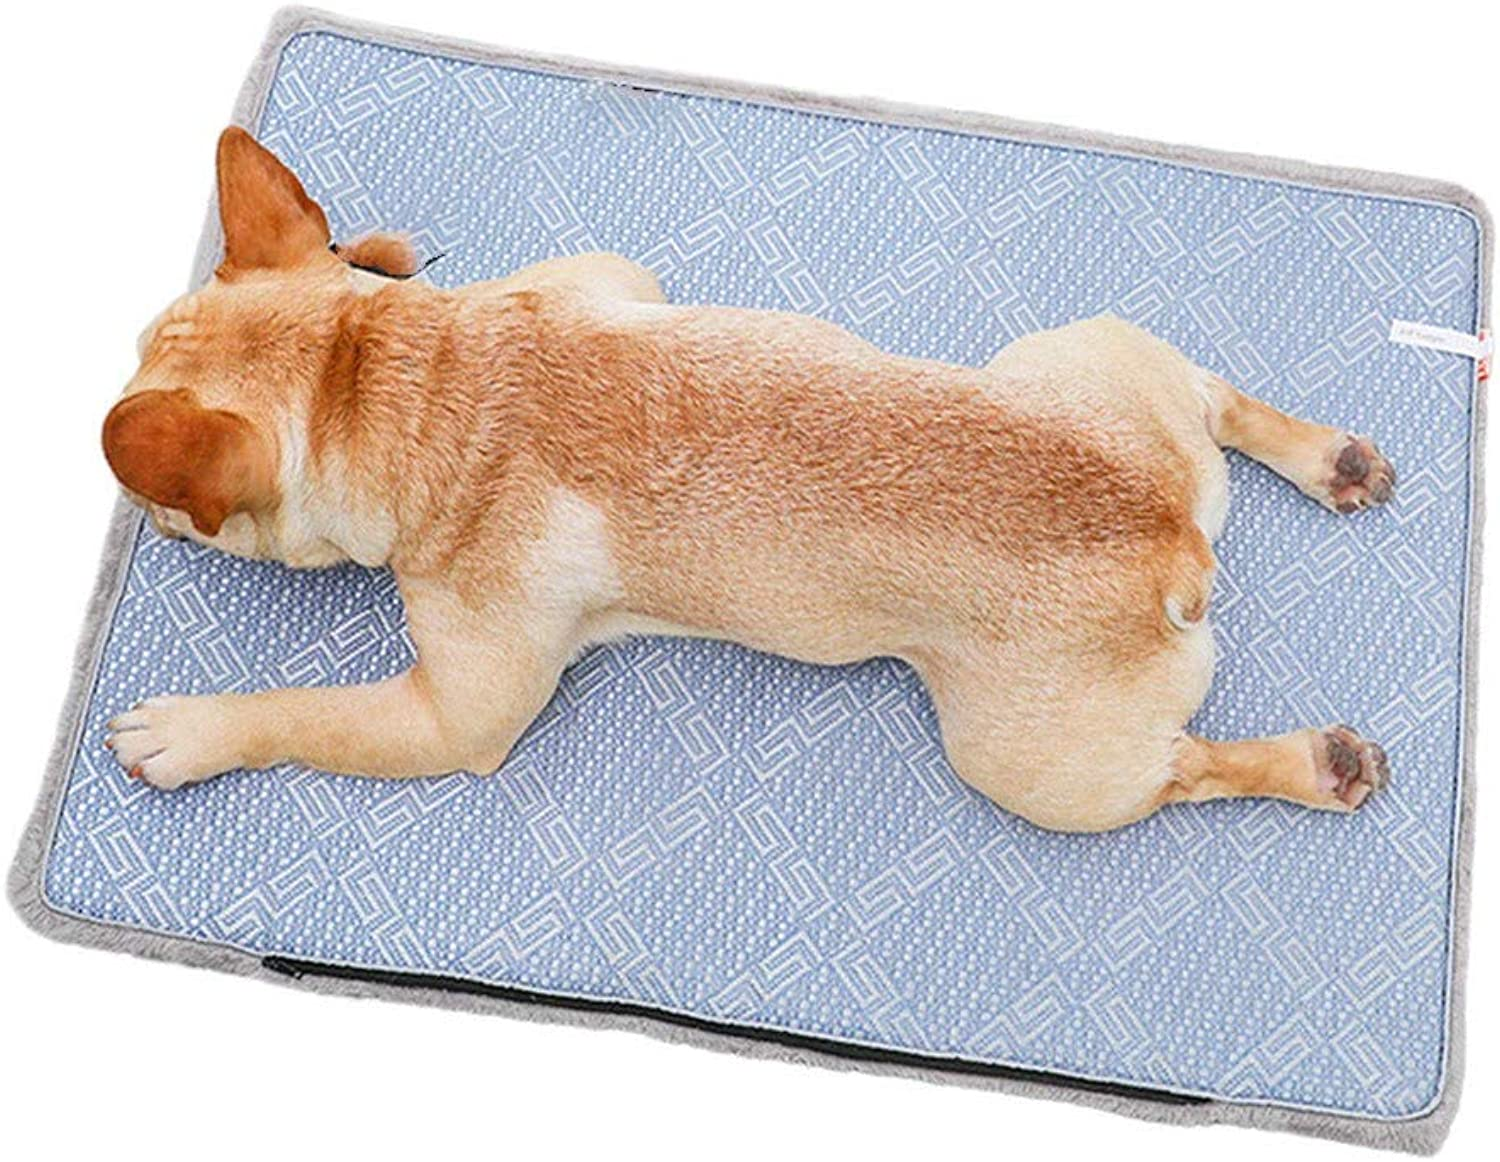 Dog Cool Mat,Ice Vine mat pet Dog Spring and Autumn Warm pad Summer Cooling mat Dualuse mat Blanket Mesh Material Breathable Cushion for Small Medium Large Dogs and Cats